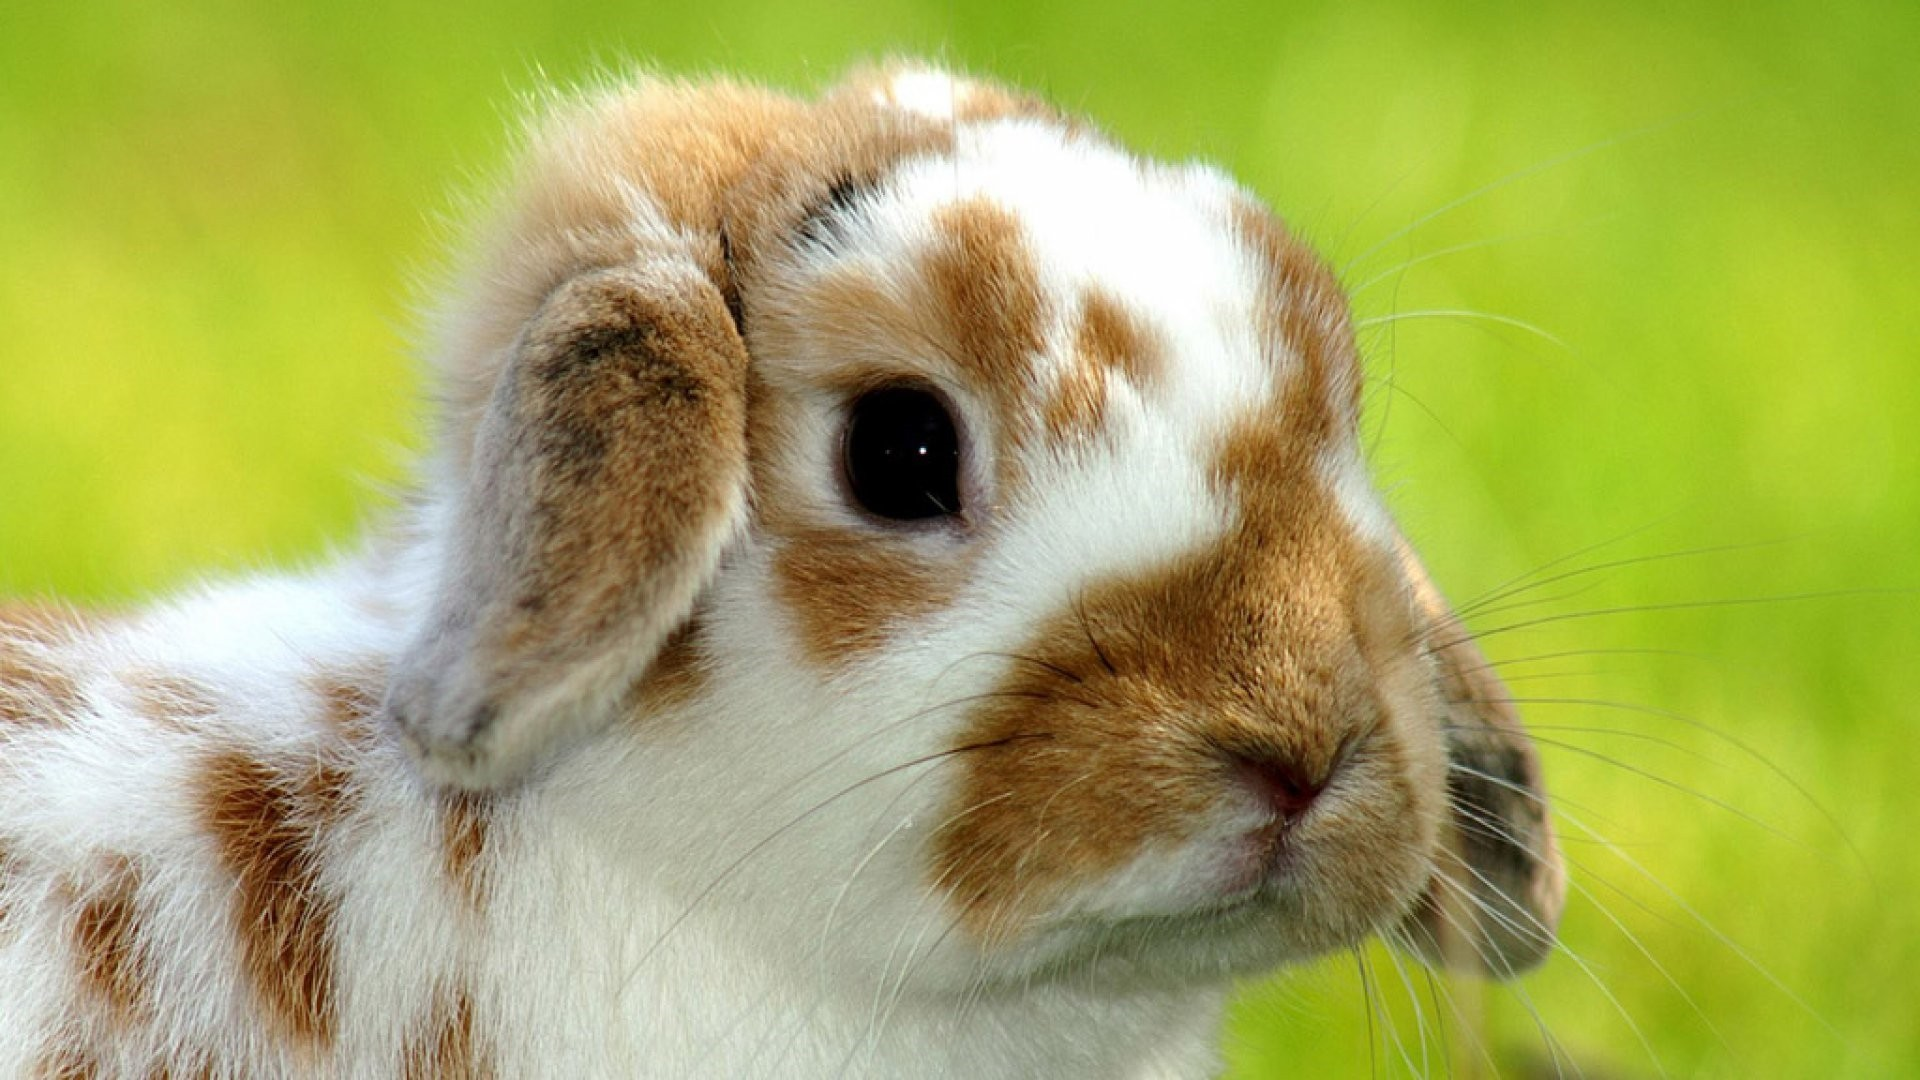 Cute Animal Free Wallpaper and Background